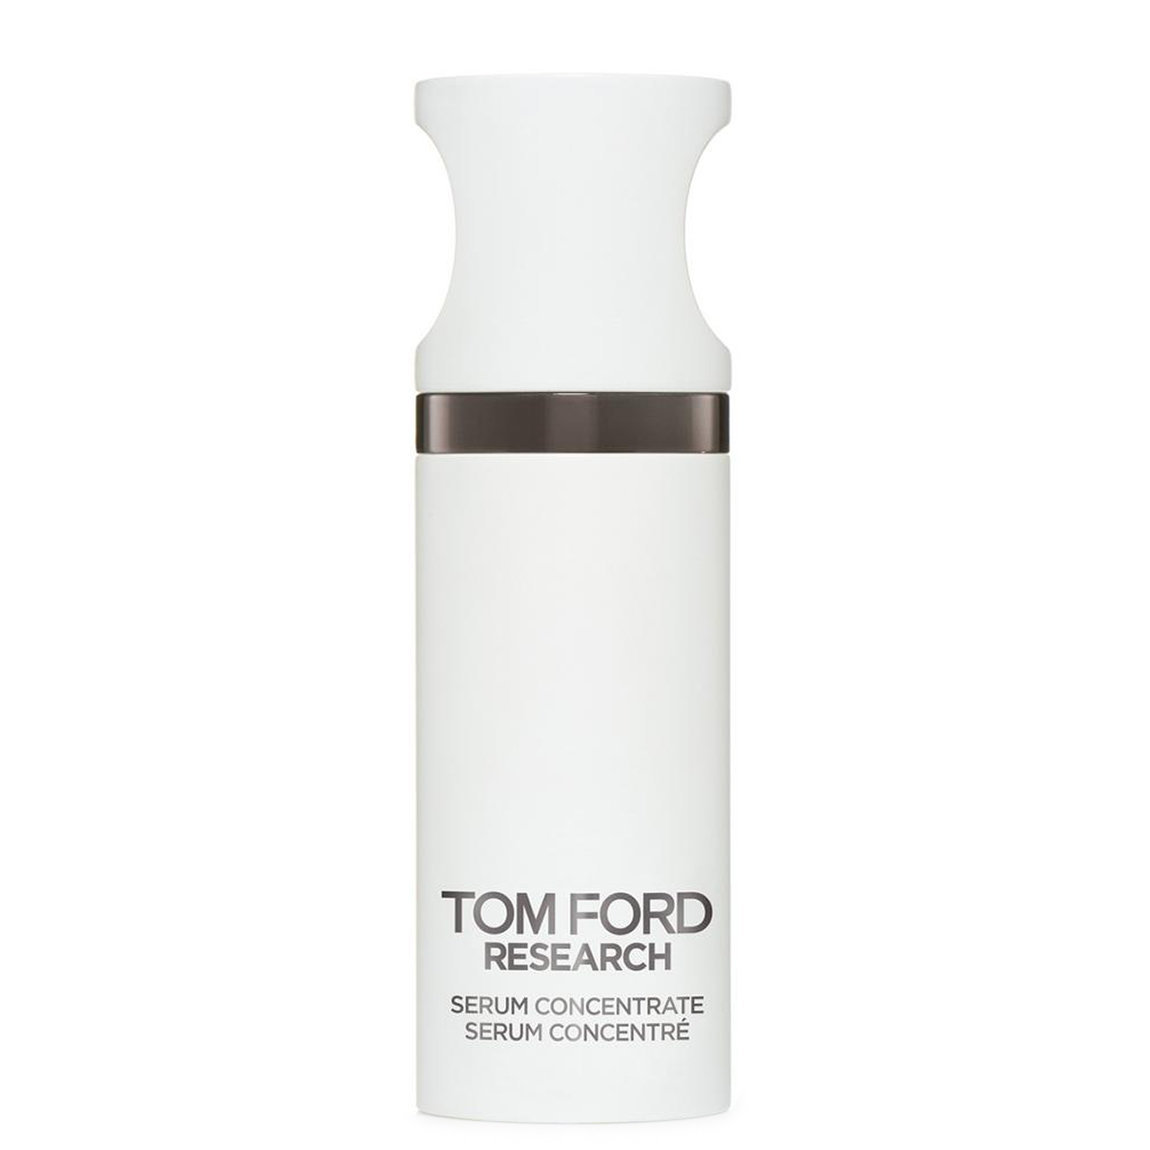 TOM FORD Research Serum Concentrate product swatch.